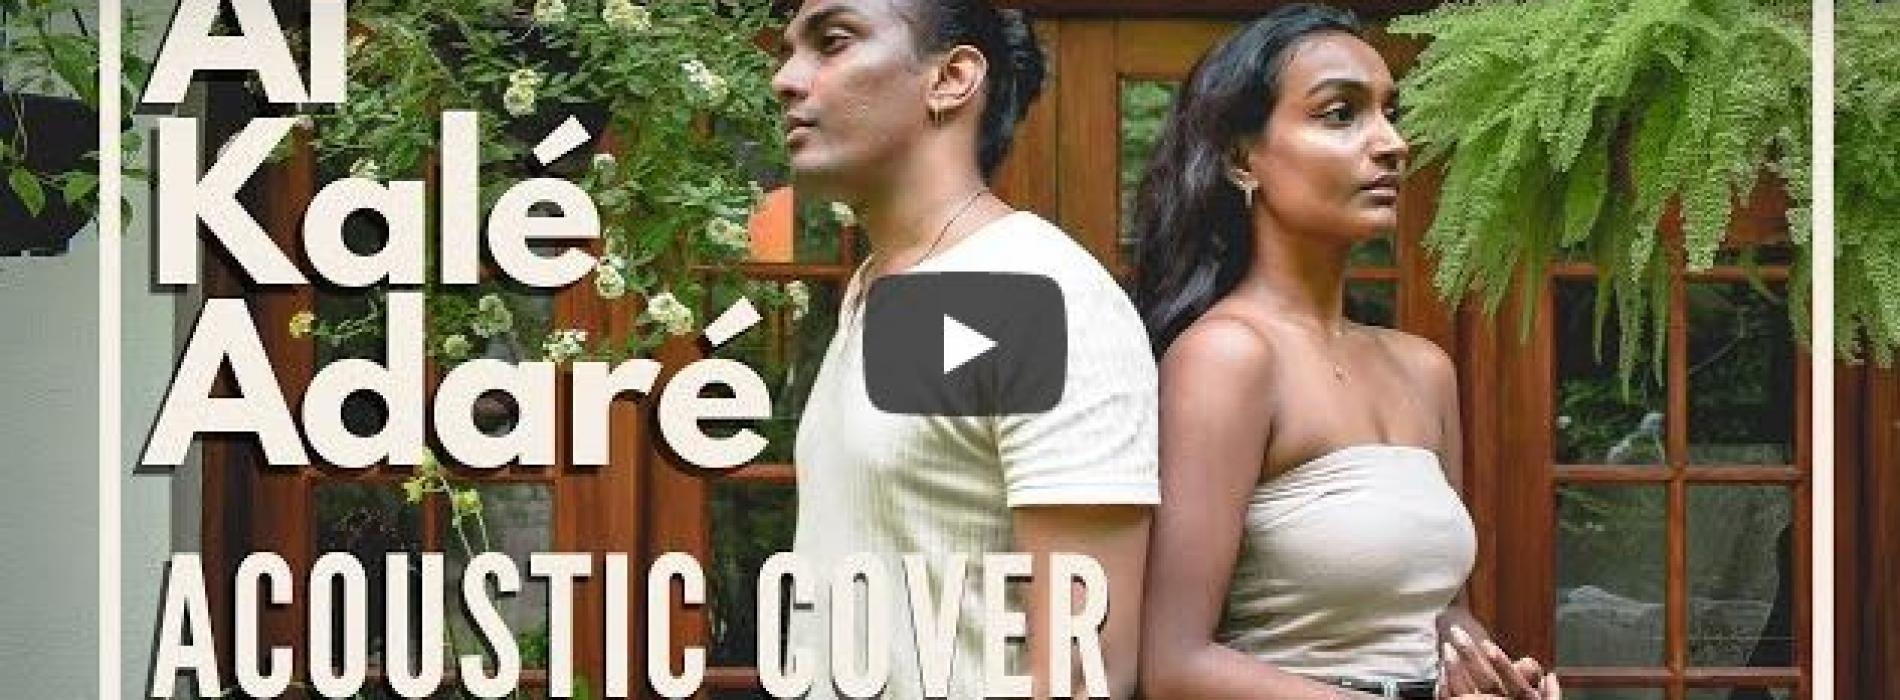 Bathiya and Santhush – Ai Kalé Adaré (Acoustic Cover by Ryan & Senani)